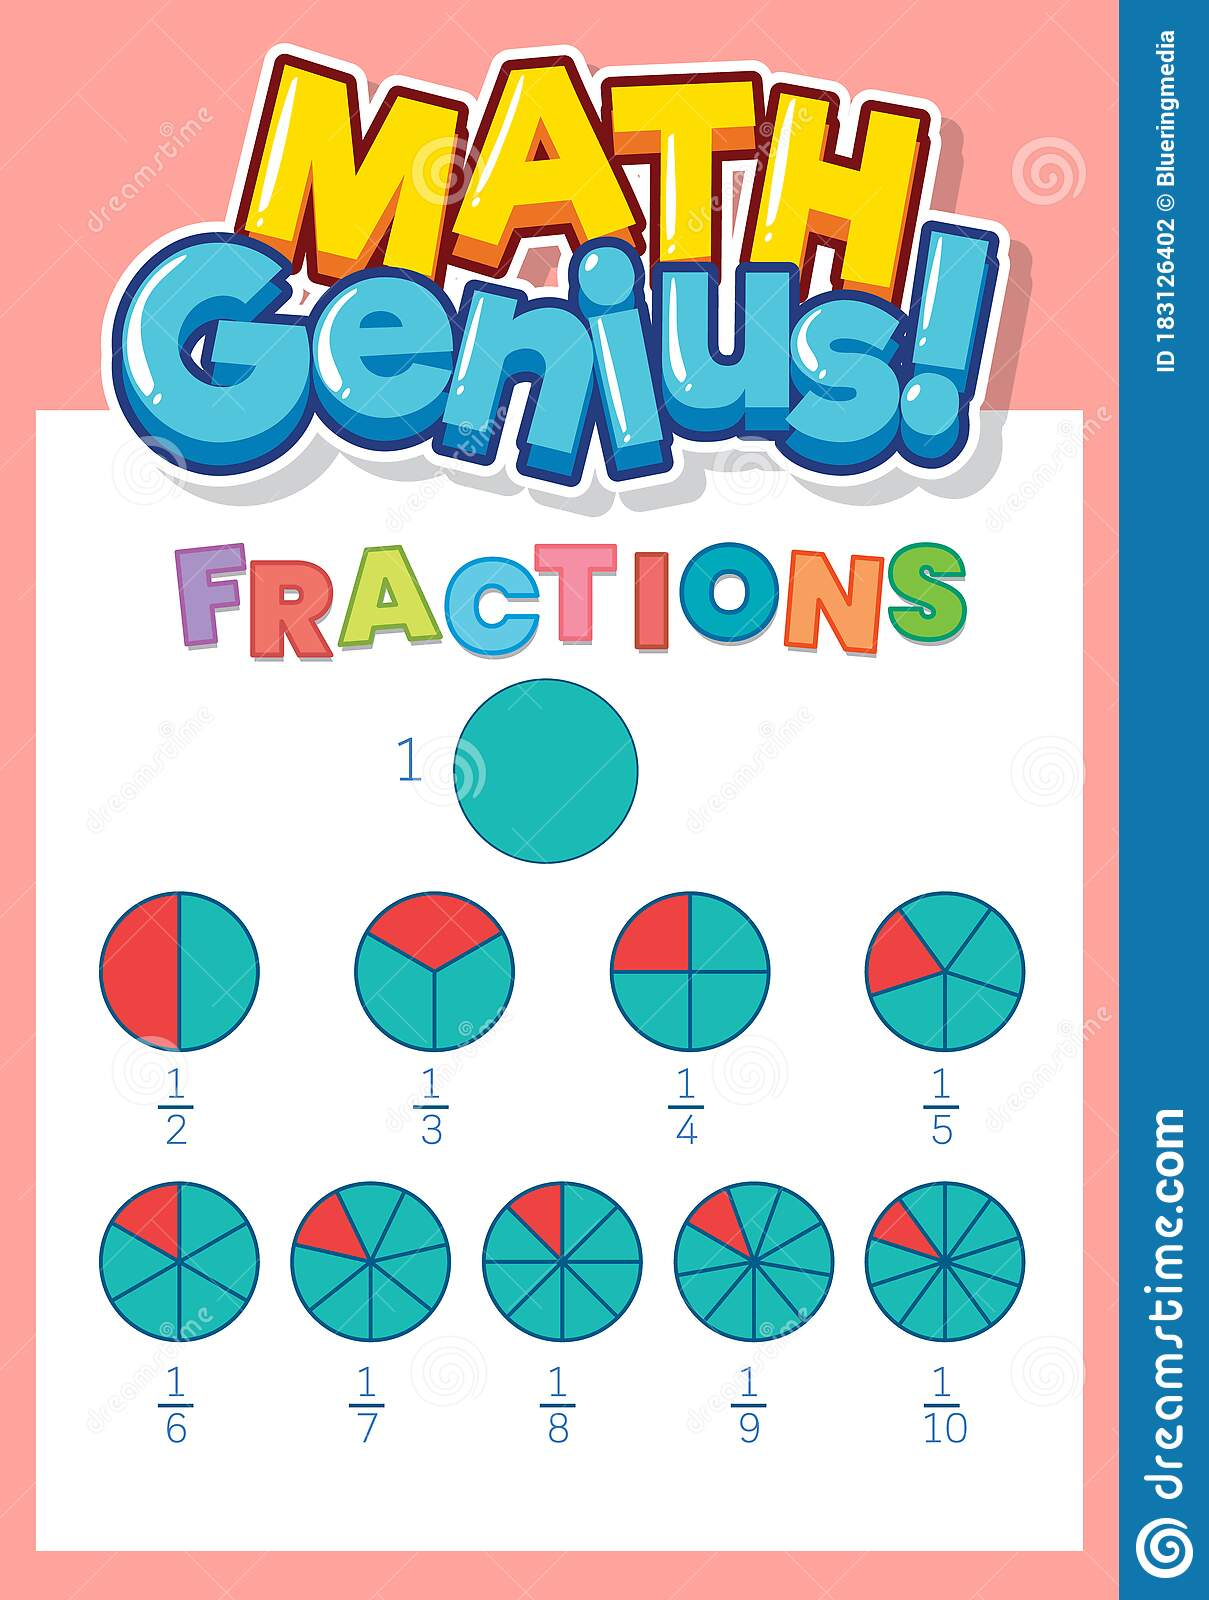 Worksheet Design Template For Fractions With Pink